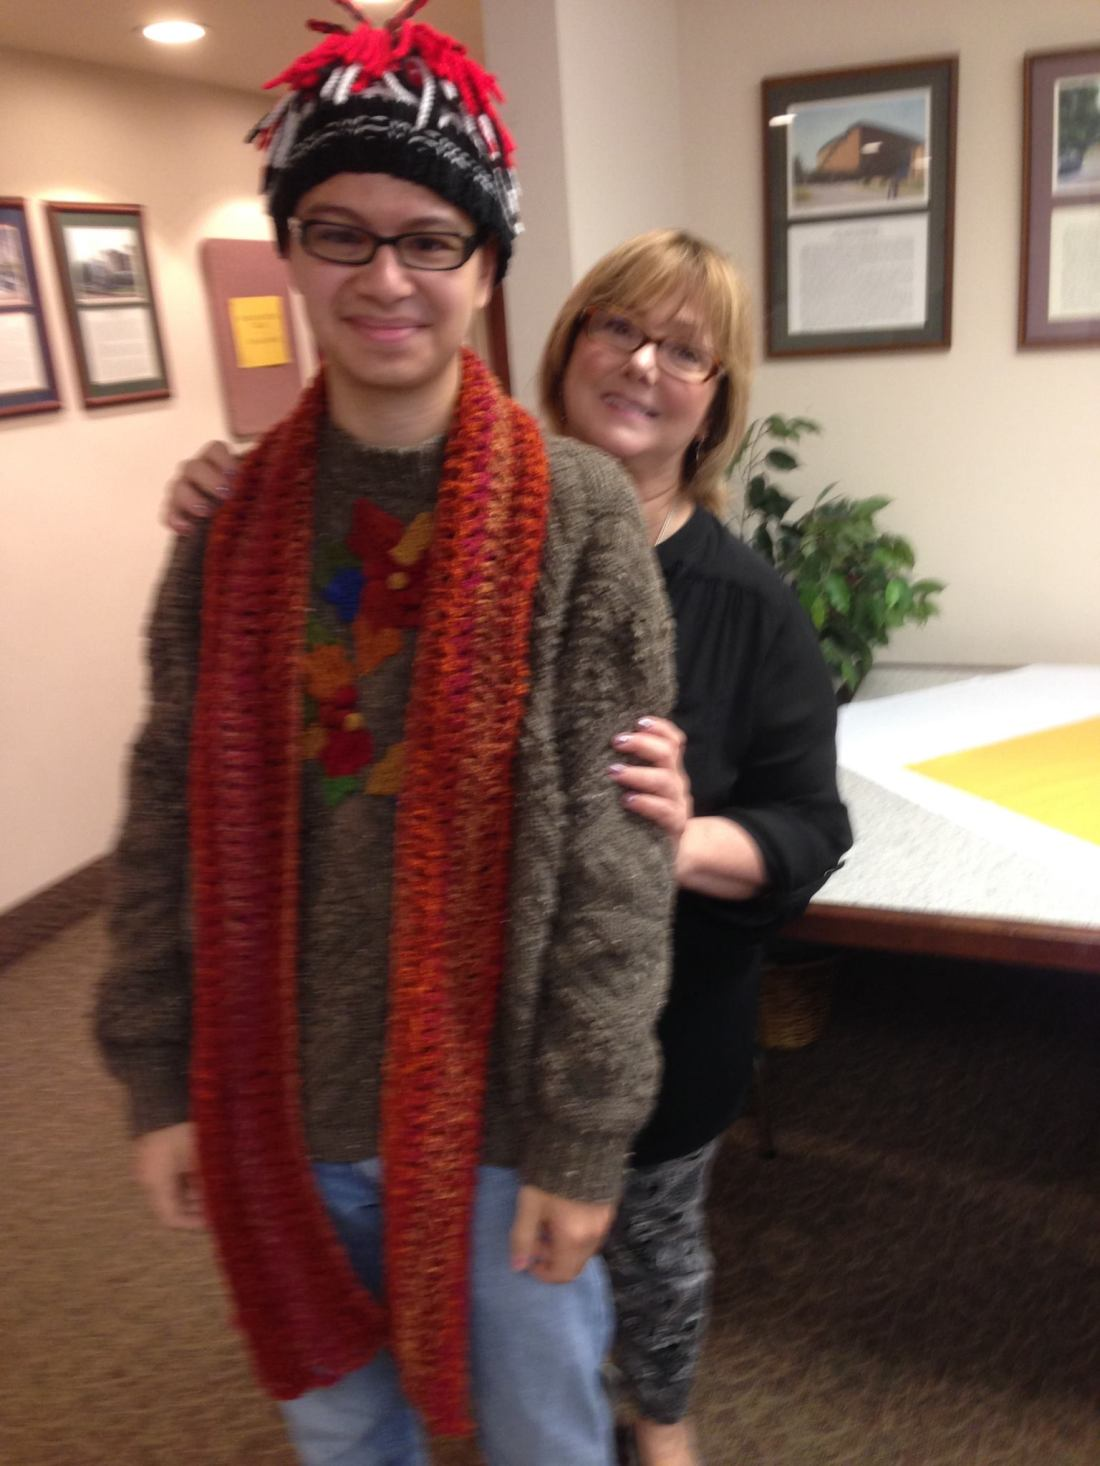 Here is Jarod, a young college student enrolled in the Art Dept. at local university. We were all taken with his interest in knitting.